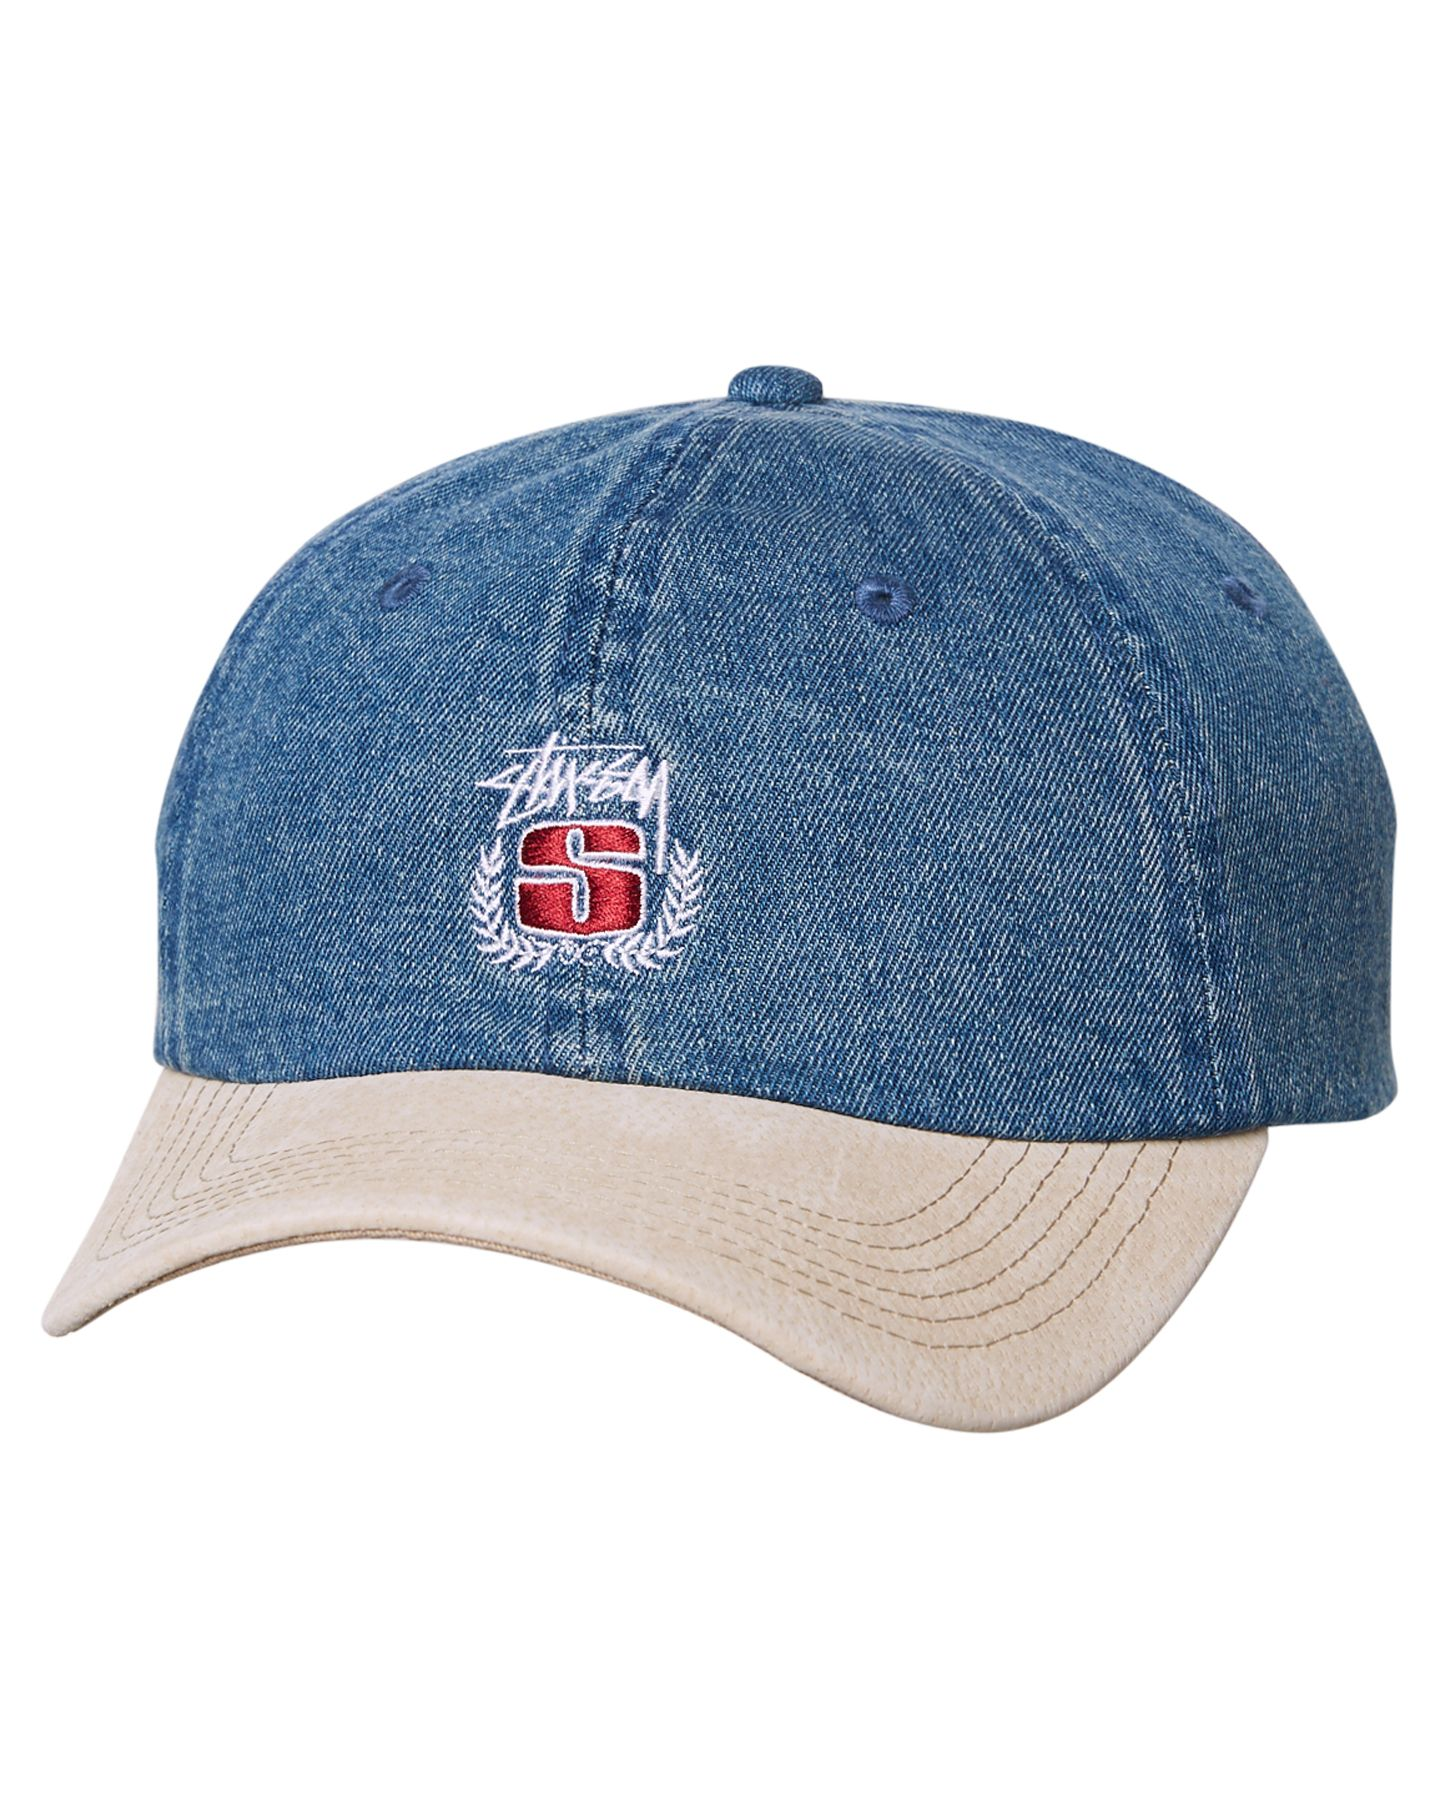 ac2c1a844f3 Purchase this before it goes Stussy Denim Suede Crest Strapback Cap Blue -  http